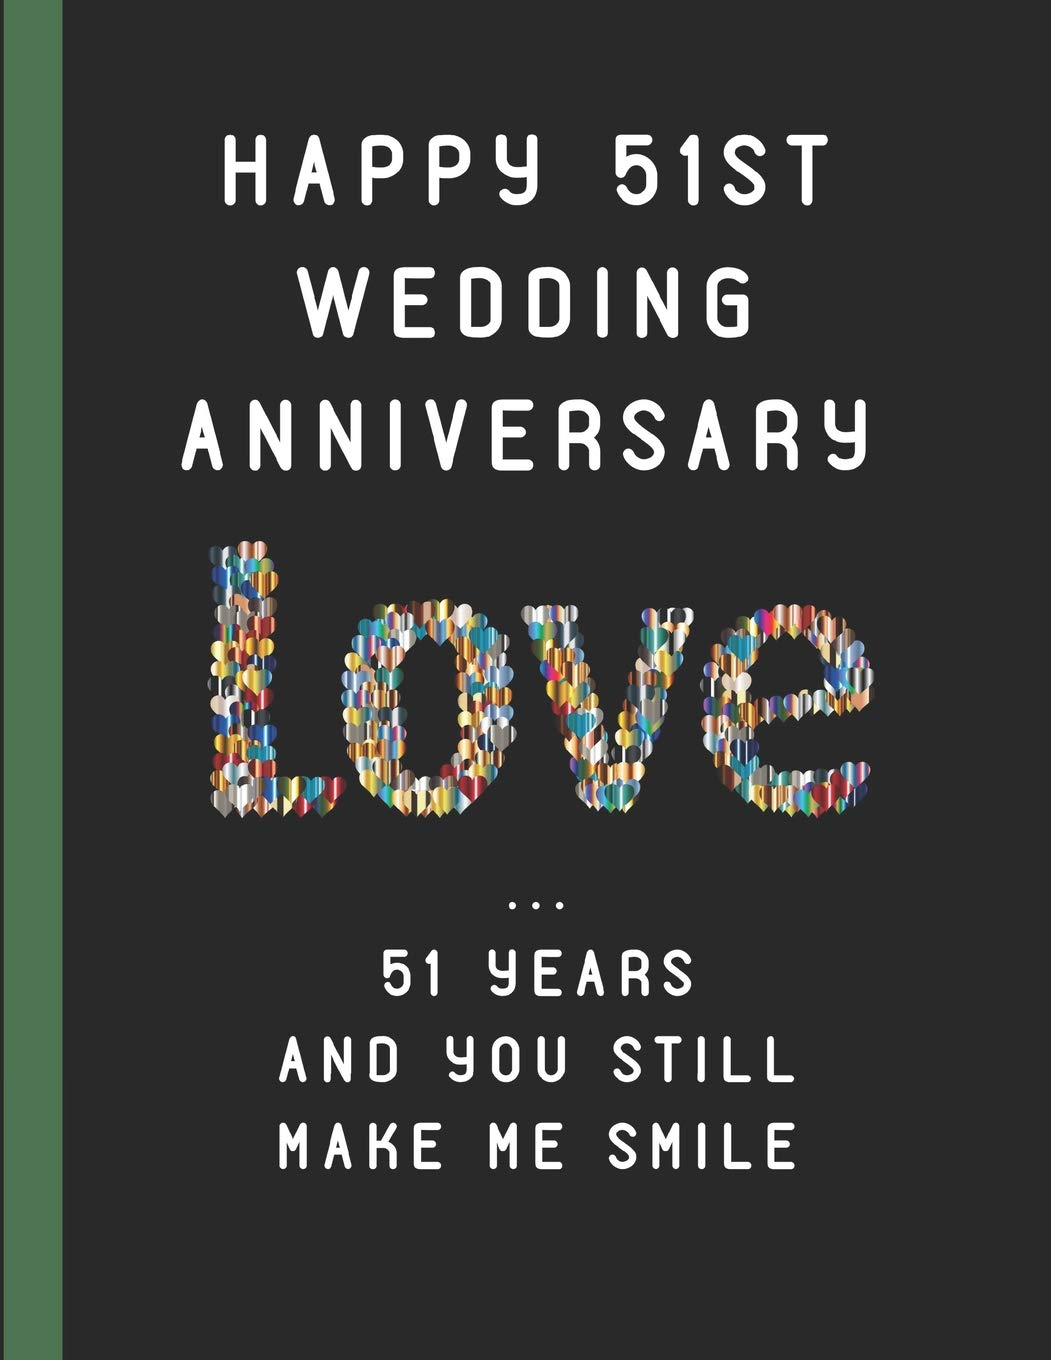 Happy 51st Wedding Anniversary Love 51 Years And You Still